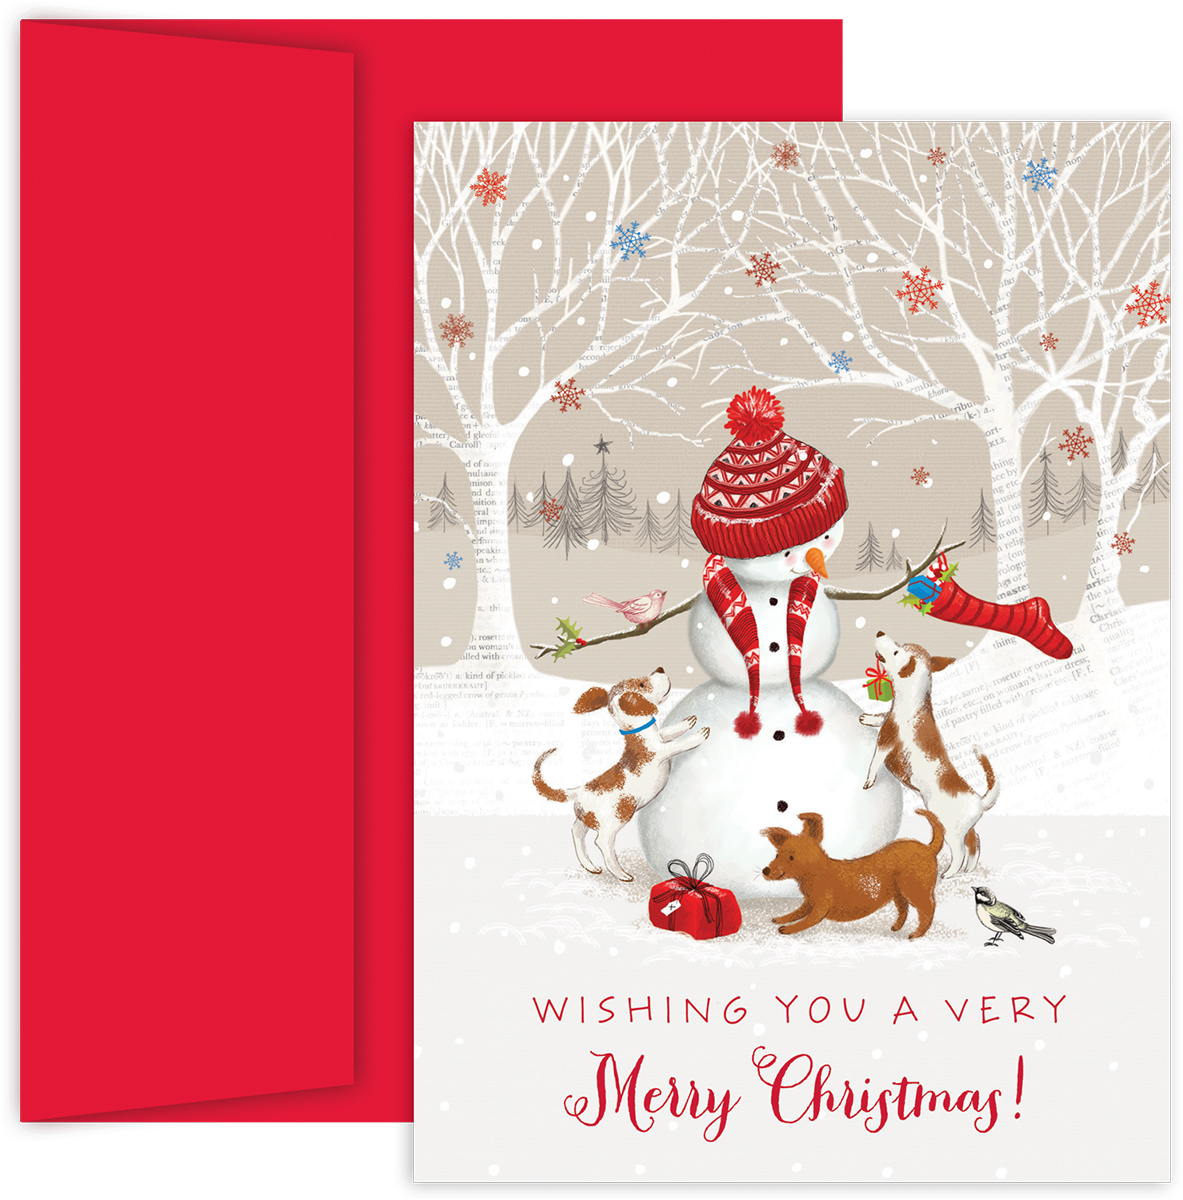 picture about Printable Holiday Cards named Snowman Pals Trip Playing cards [854200] : Designer Papers ornamental printer paper Printable Paper Xmas stationery